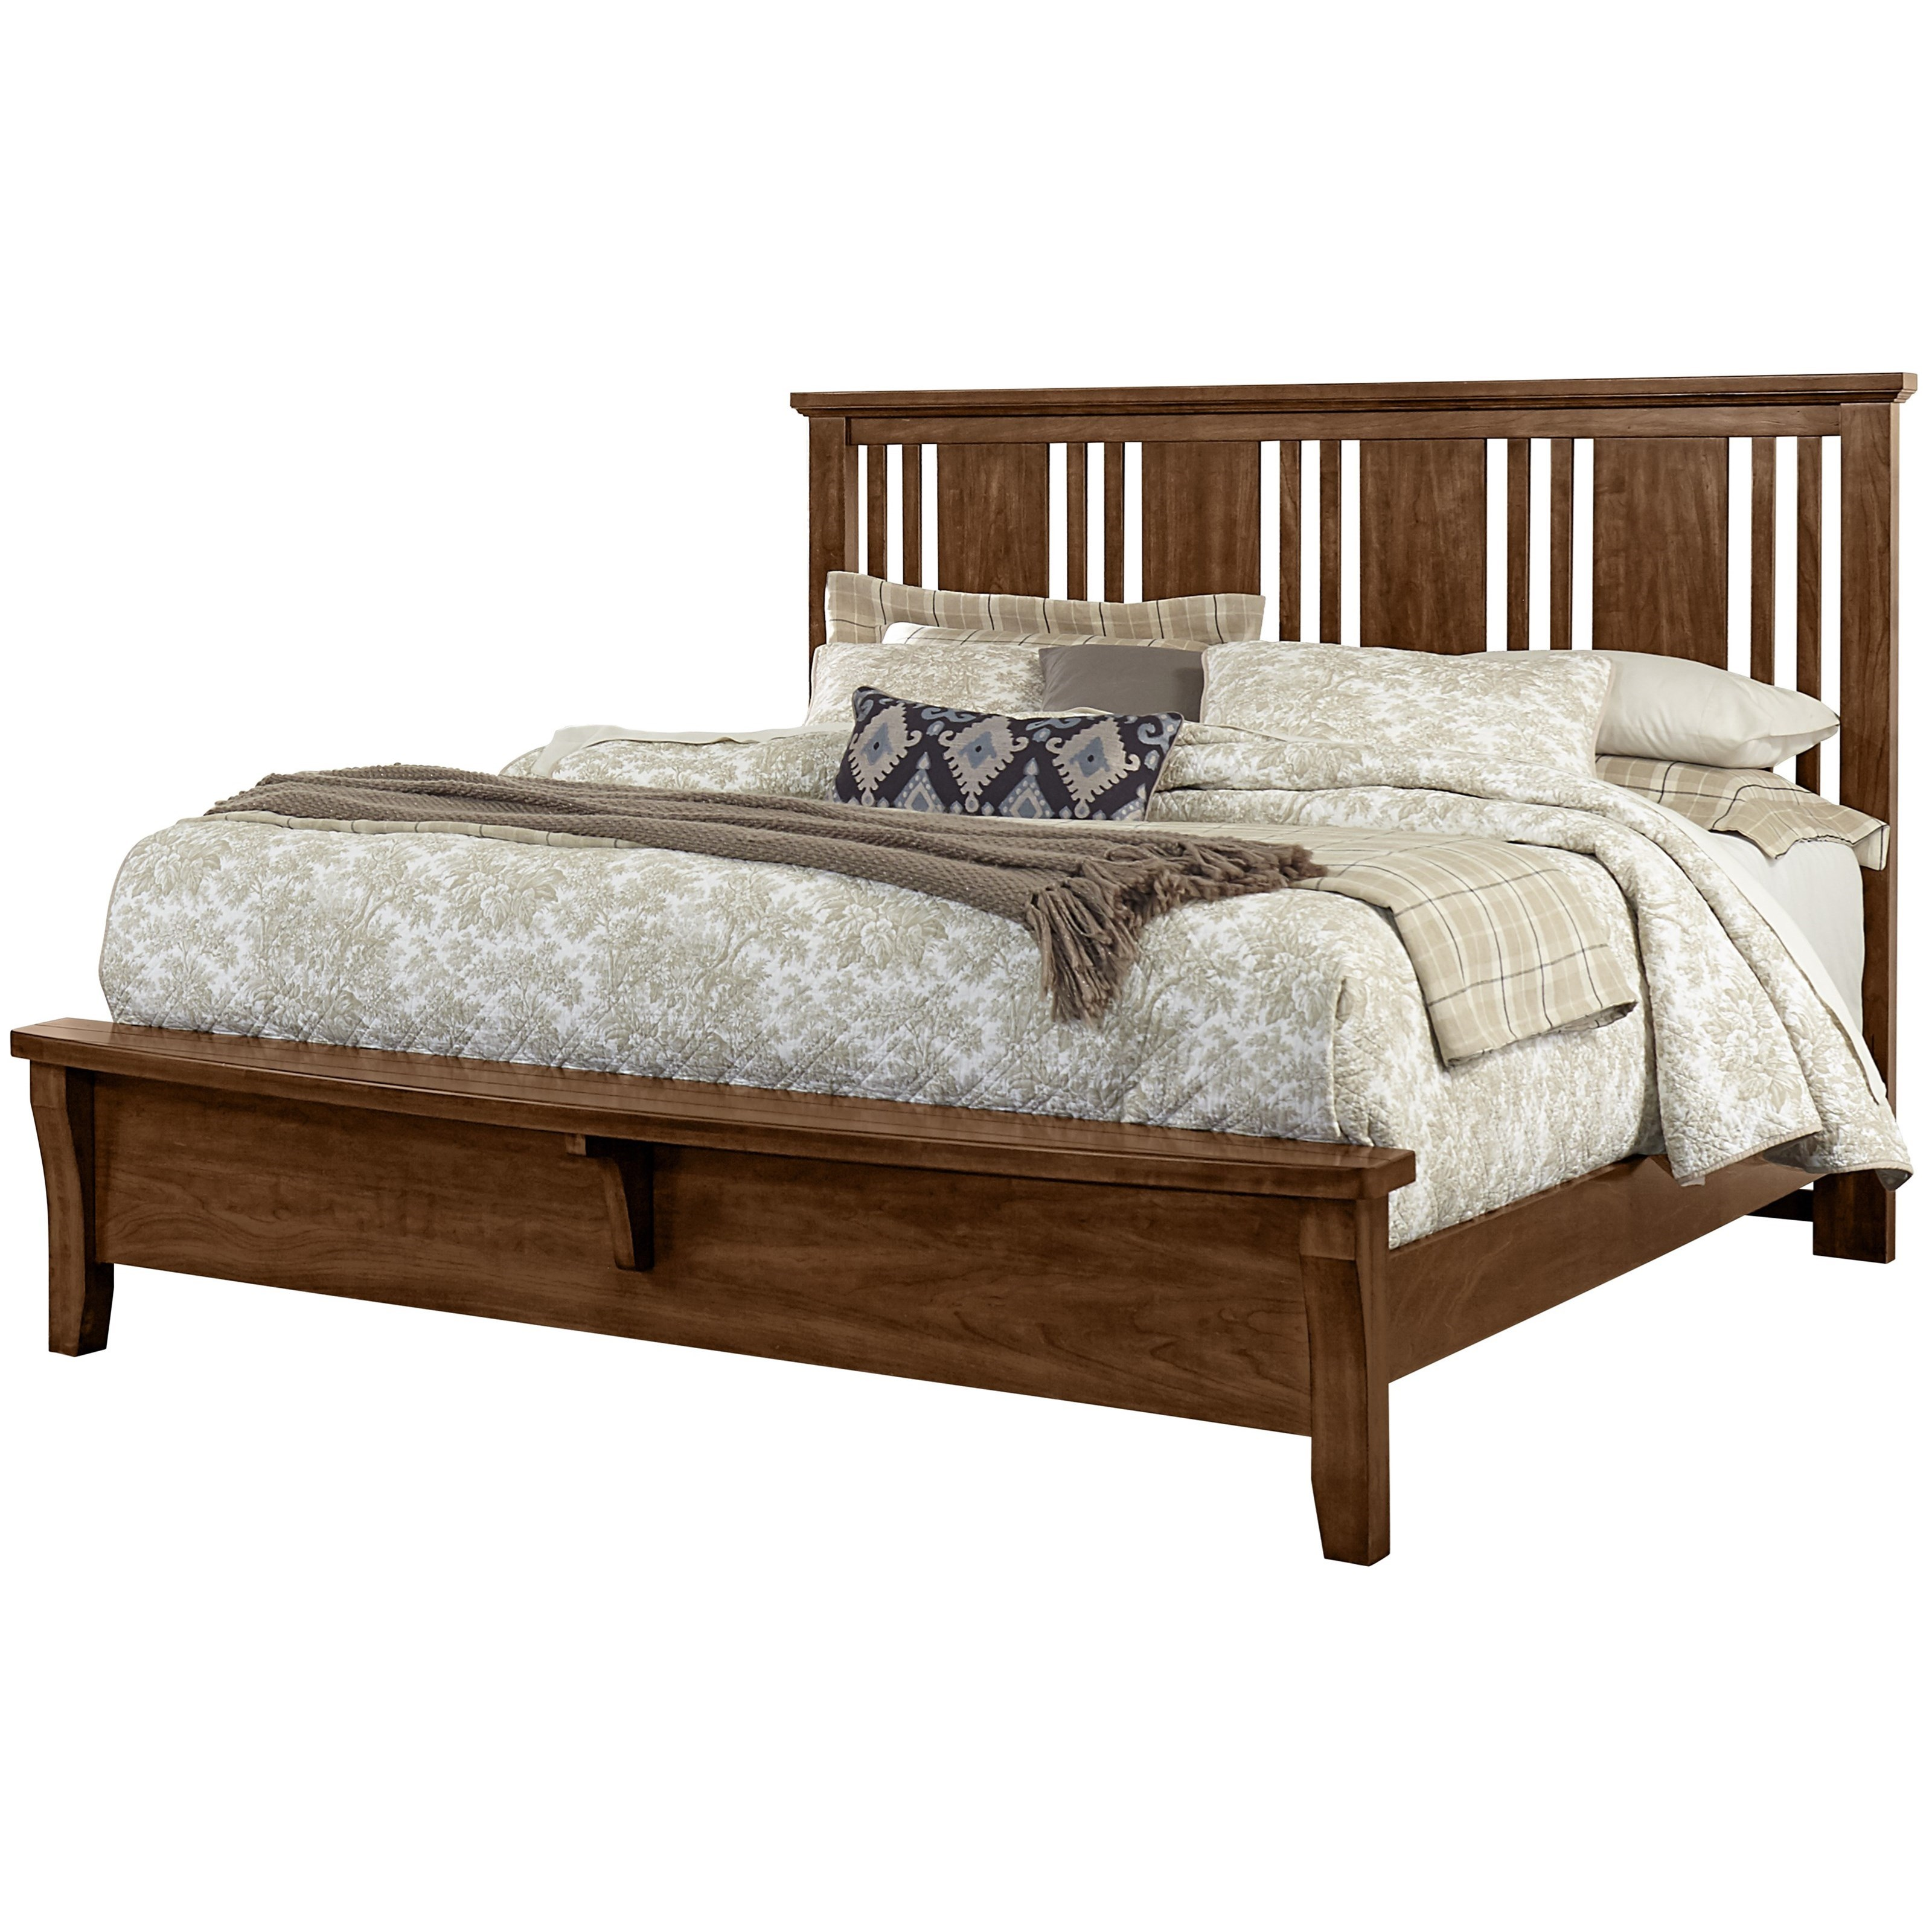 Bedroom Bench King Bed Delivery Estimates Northeast Factory Direct Cleveland